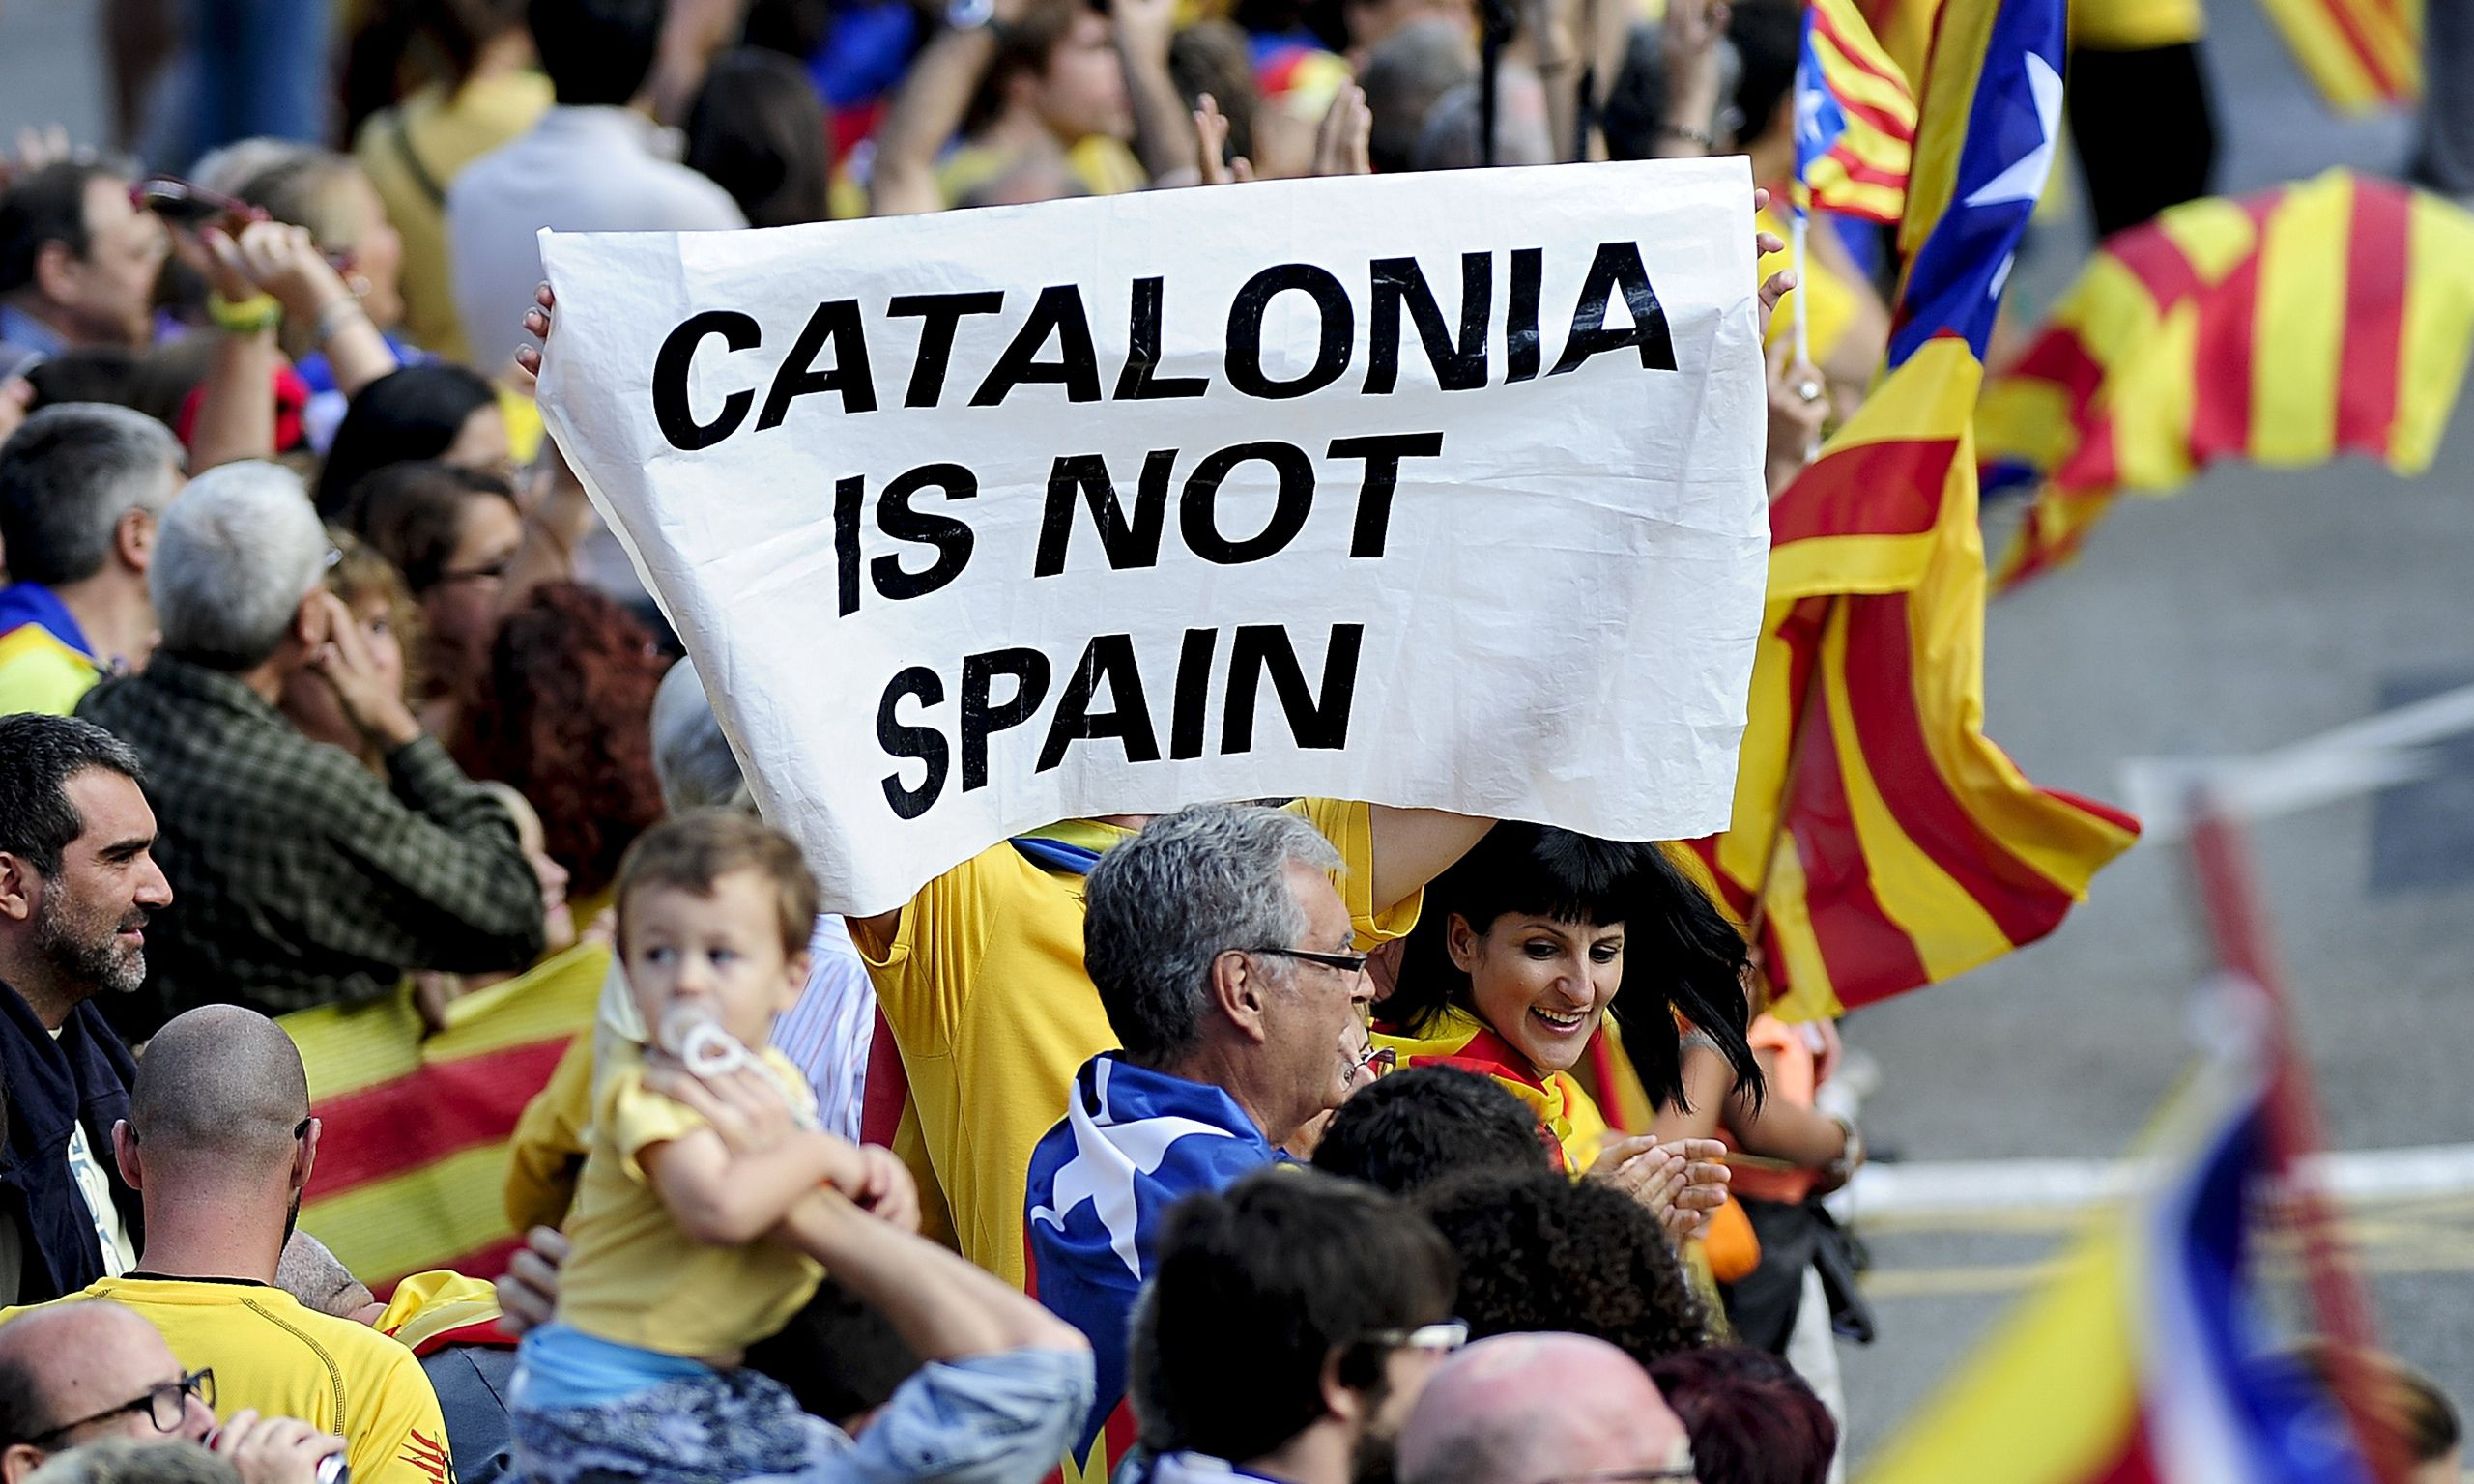 Catalans to demonstrate and demand right to hold referendum - theguardian.com, Stephen Burgen, 11 September 2014.